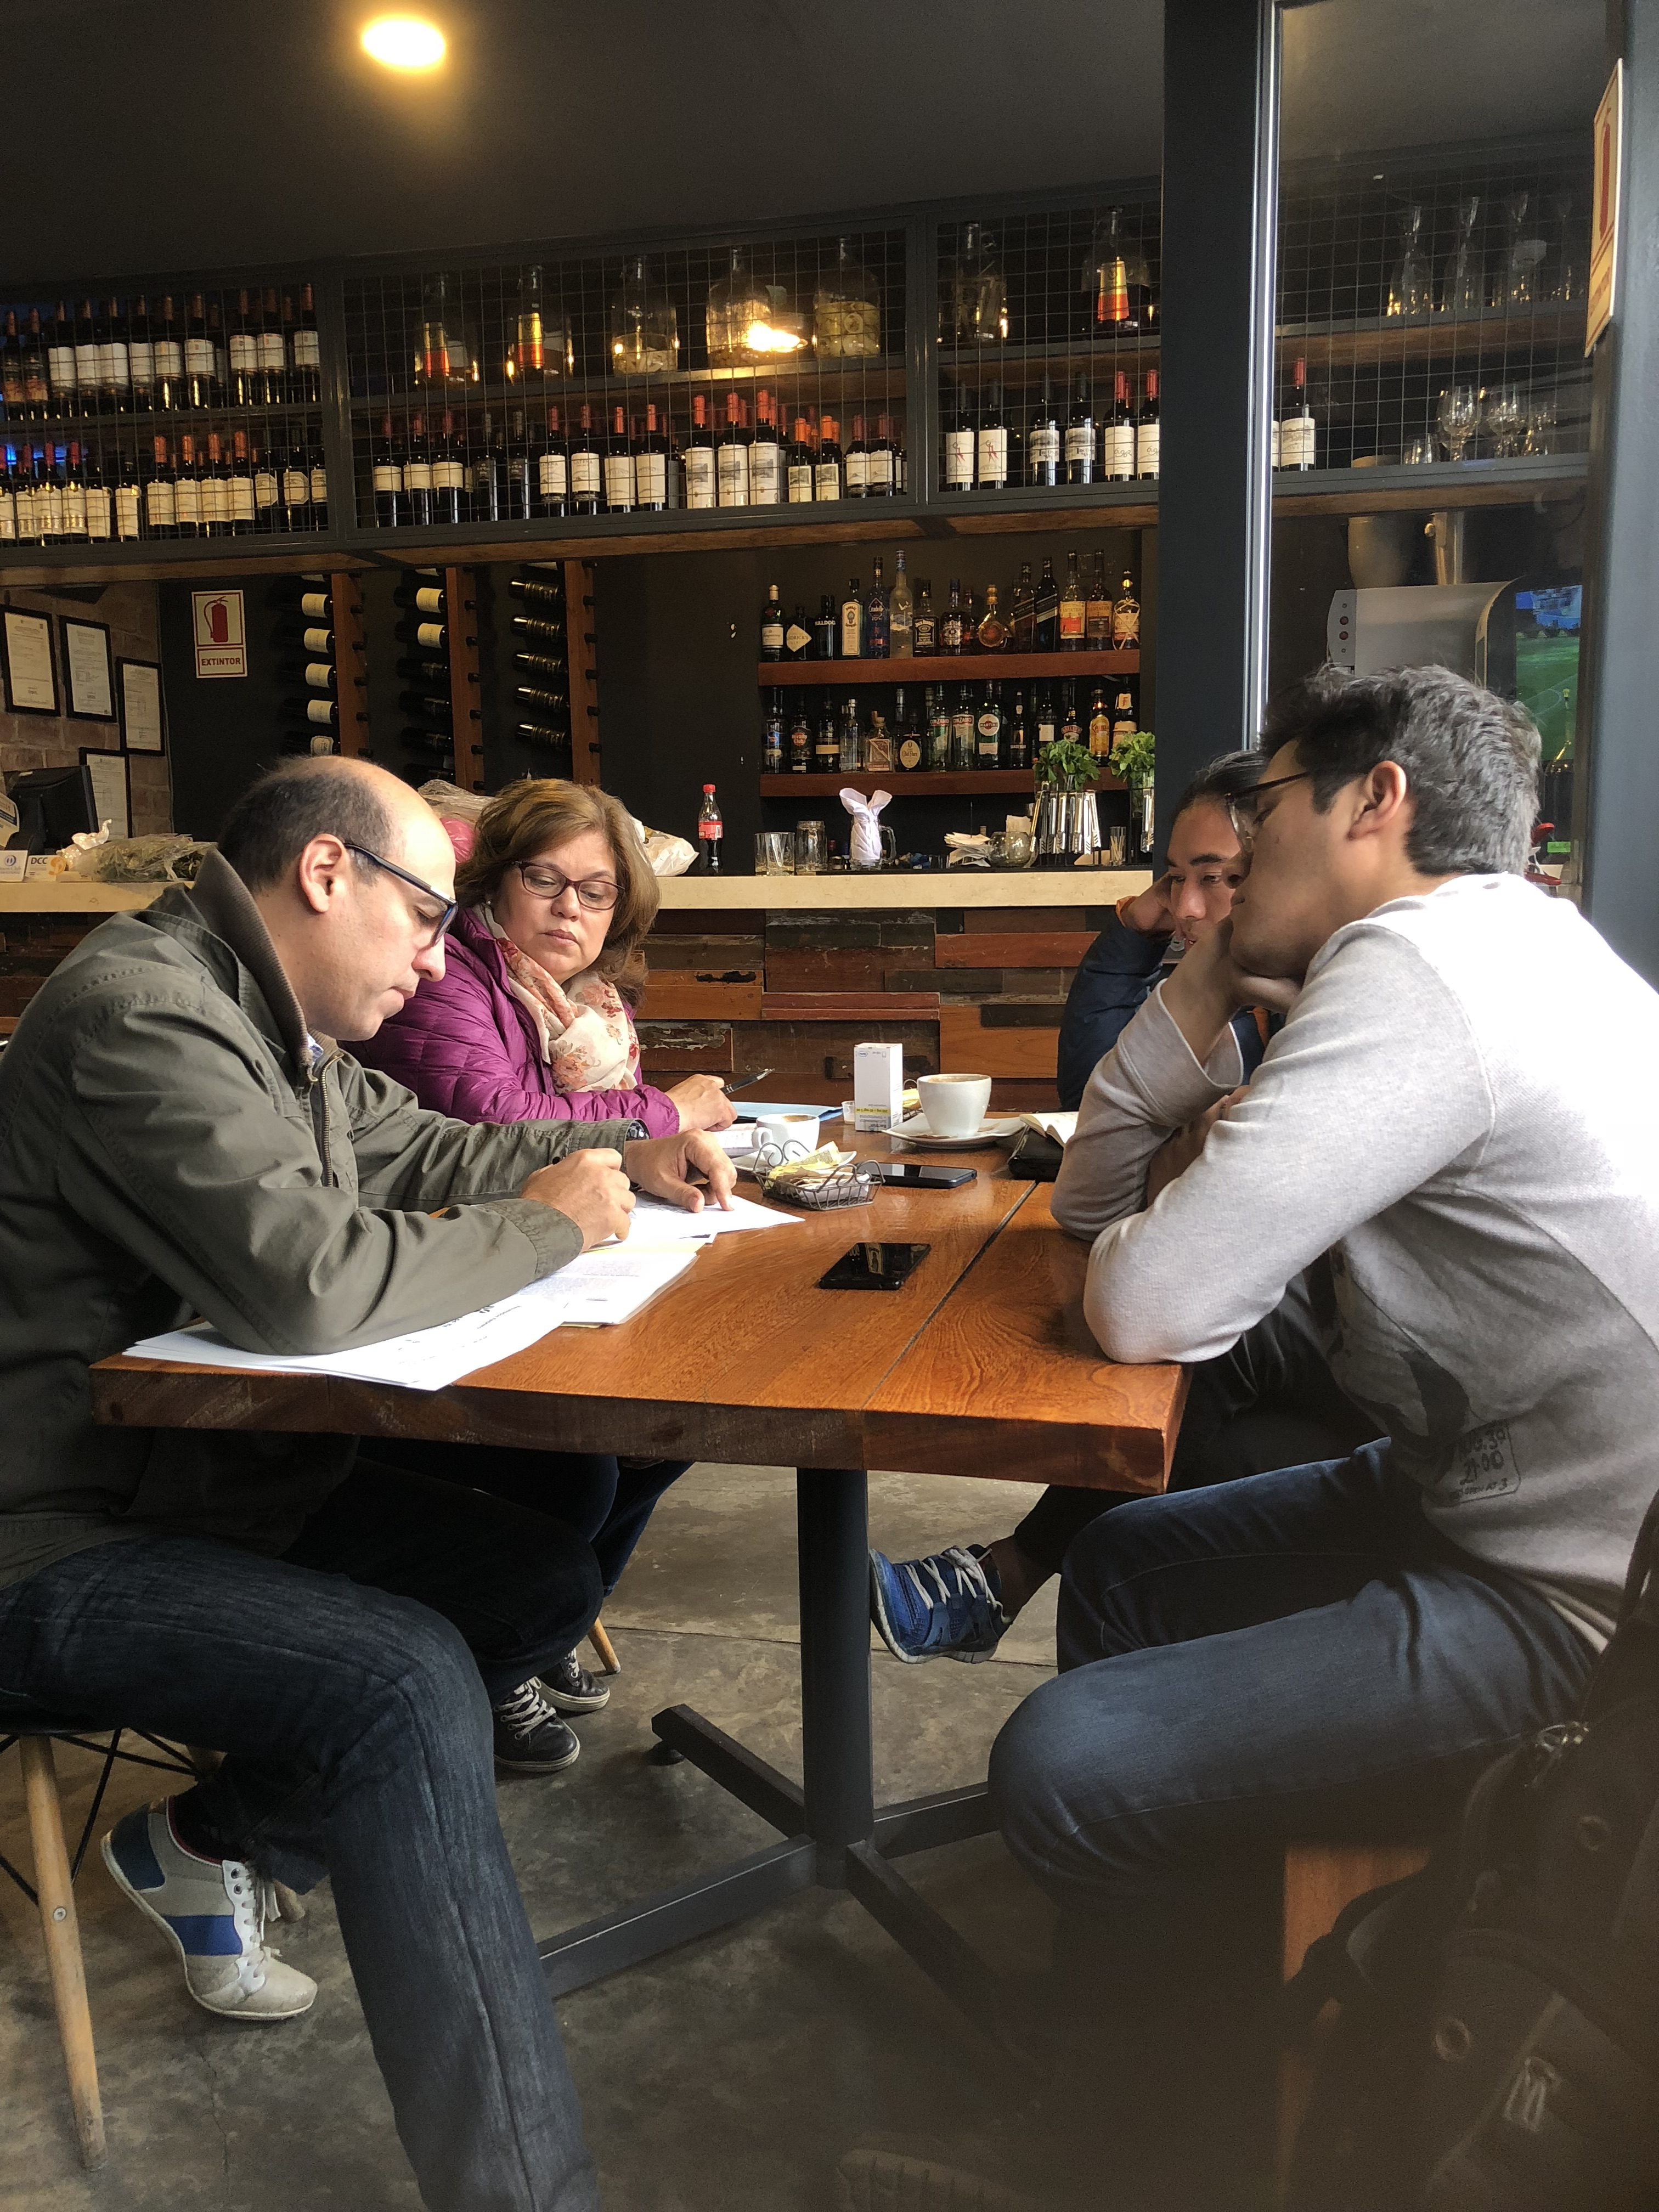 Working with Experteers at Cafe Compadre